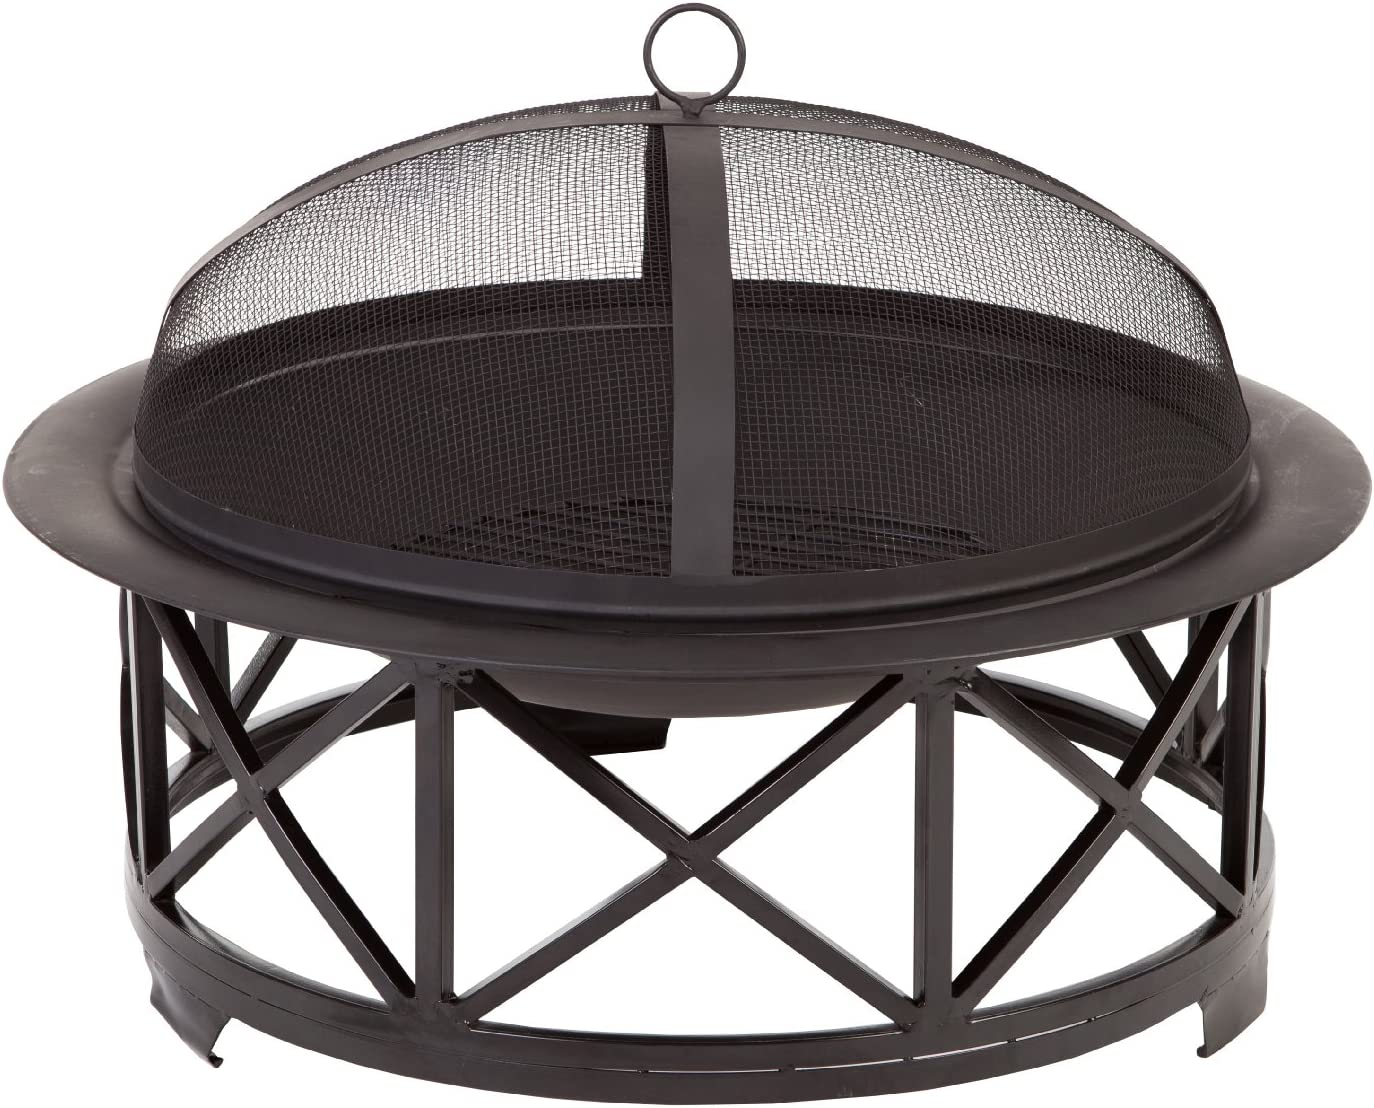 Fire Sense Portsmouth Round Black Steel 30 Inch Fire Pit with Base | Wood Burning | Spark Screen, Wood Grate, Screen Lift Tool, and Vinyl Weather Cover Included | Lightweight Portable Patio